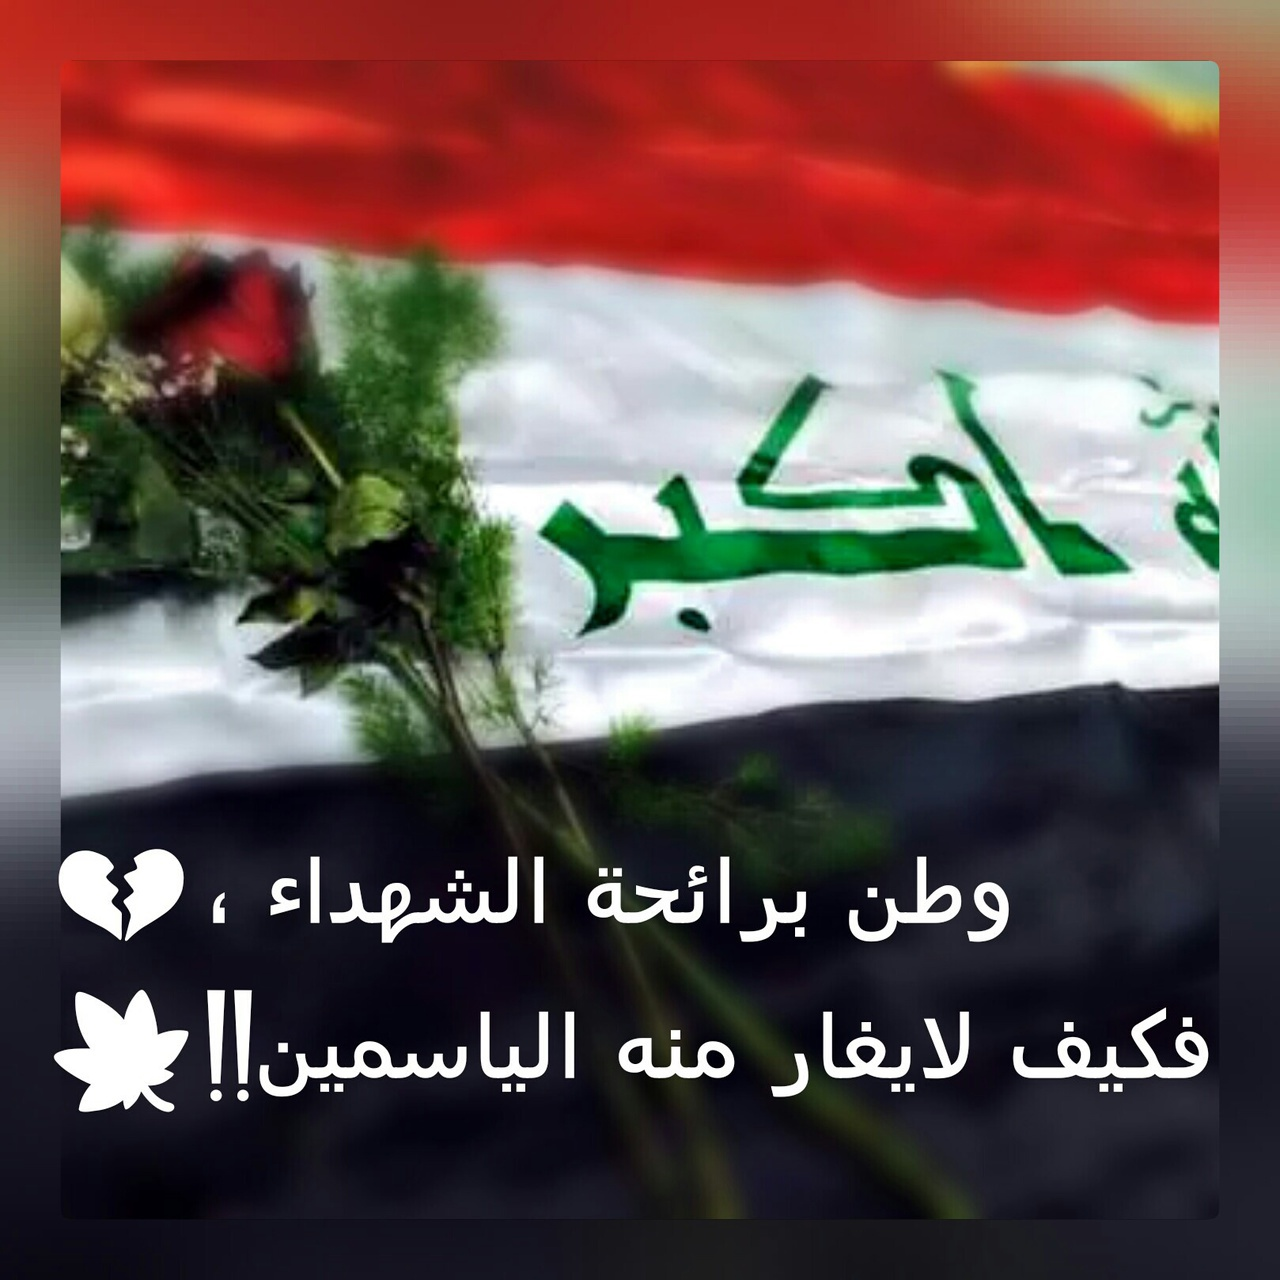 84 Images About عراق الحب On We Heart It See More About